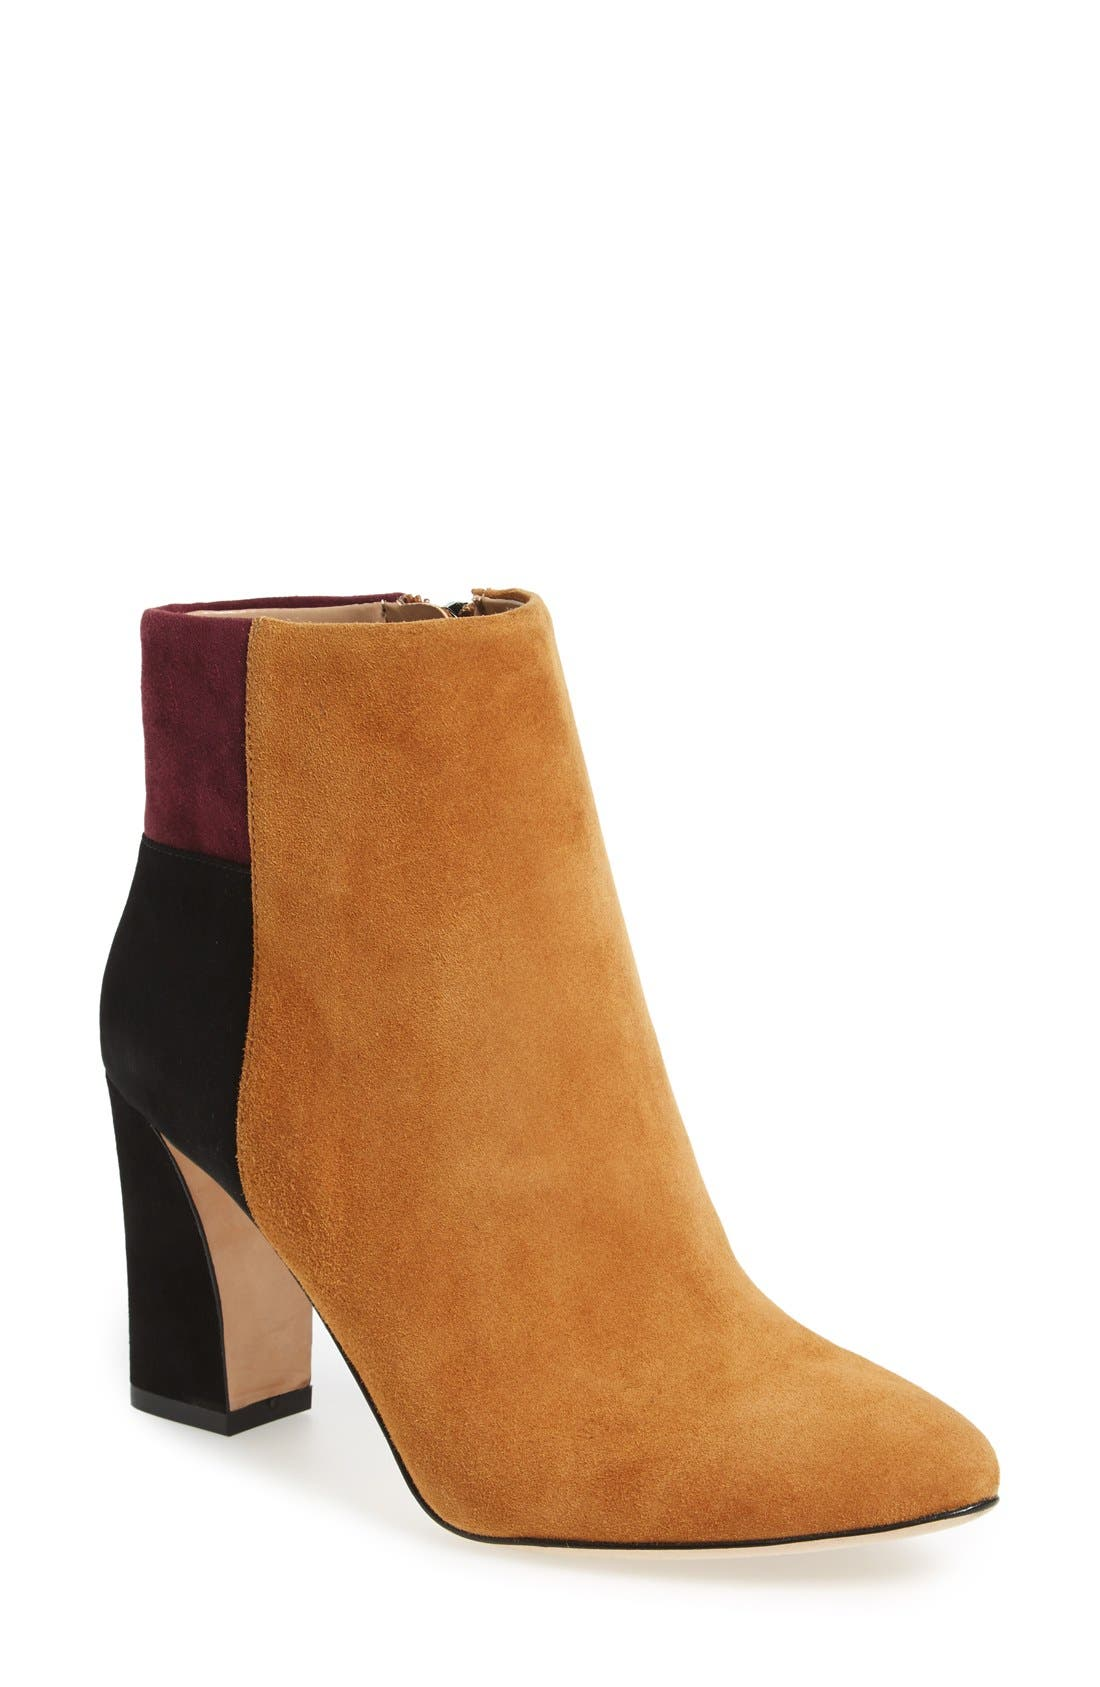 Alternate Image 1 Selected - BCBGMAXAZRIA 'Blyss' Bootie (Women)